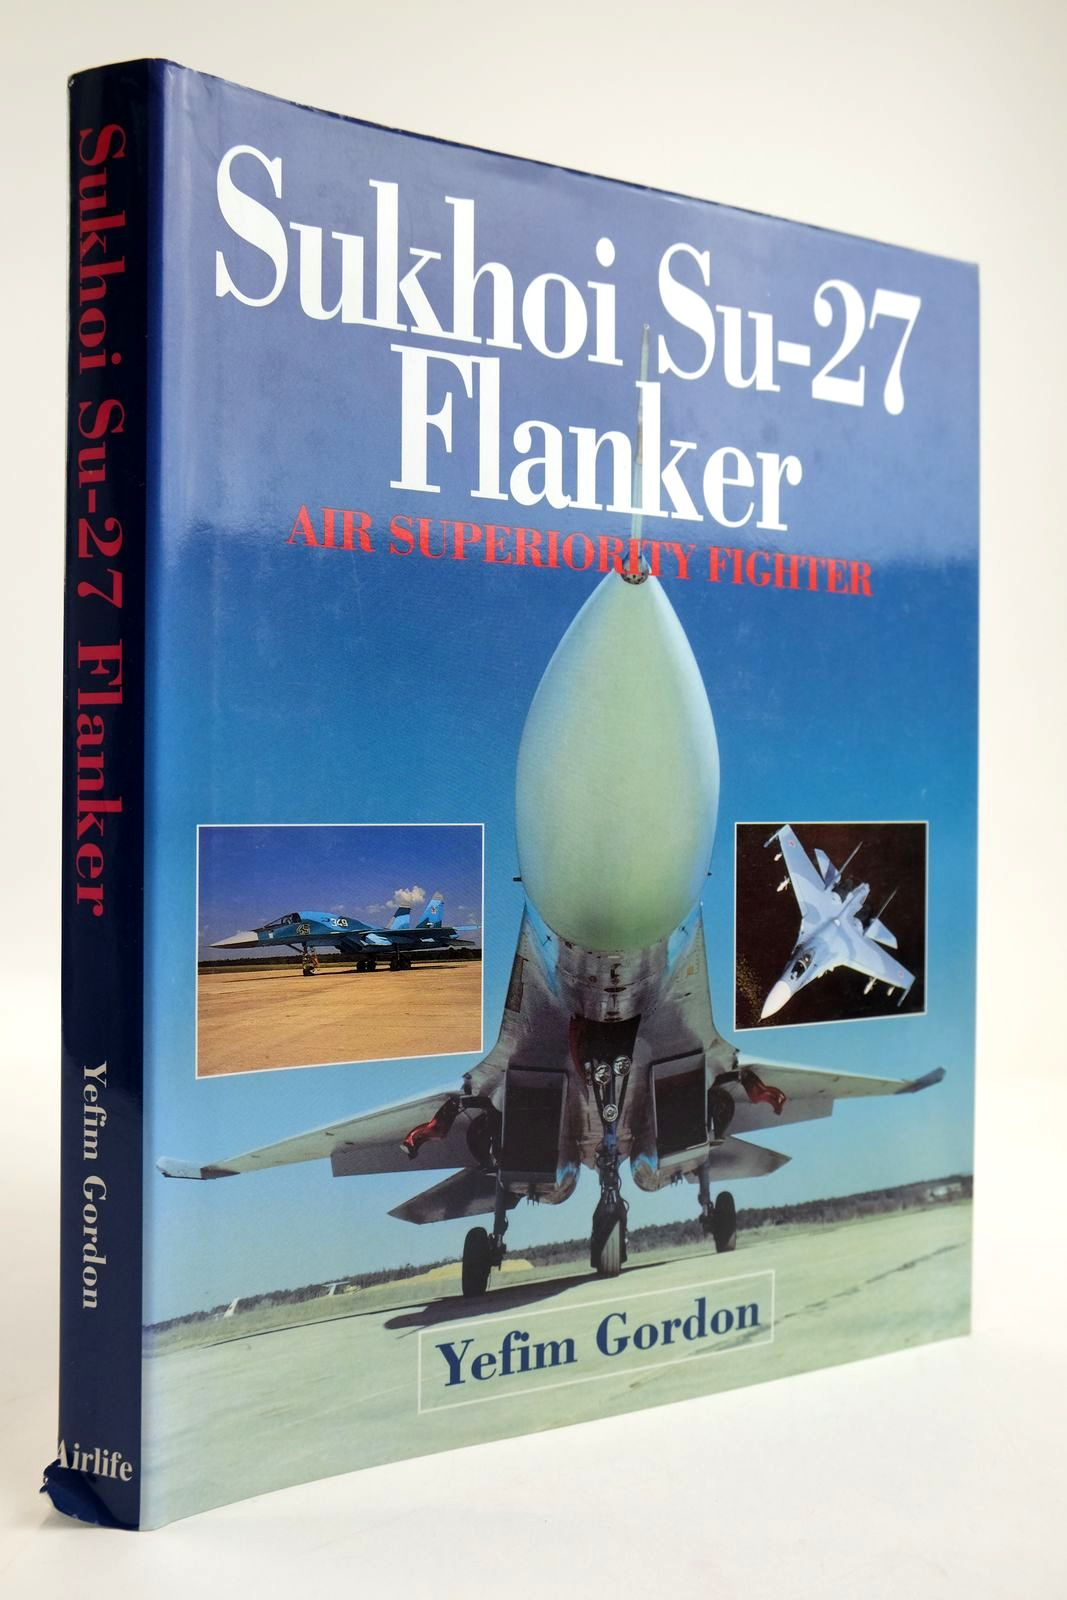 Photo of SUKHOI SU-27 FLANKER AIR SUPERIORITY FIGHTER written by Gordon, Yefim published by Airlife (STOCK CODE: 2133812)  for sale by Stella & Rose's Books